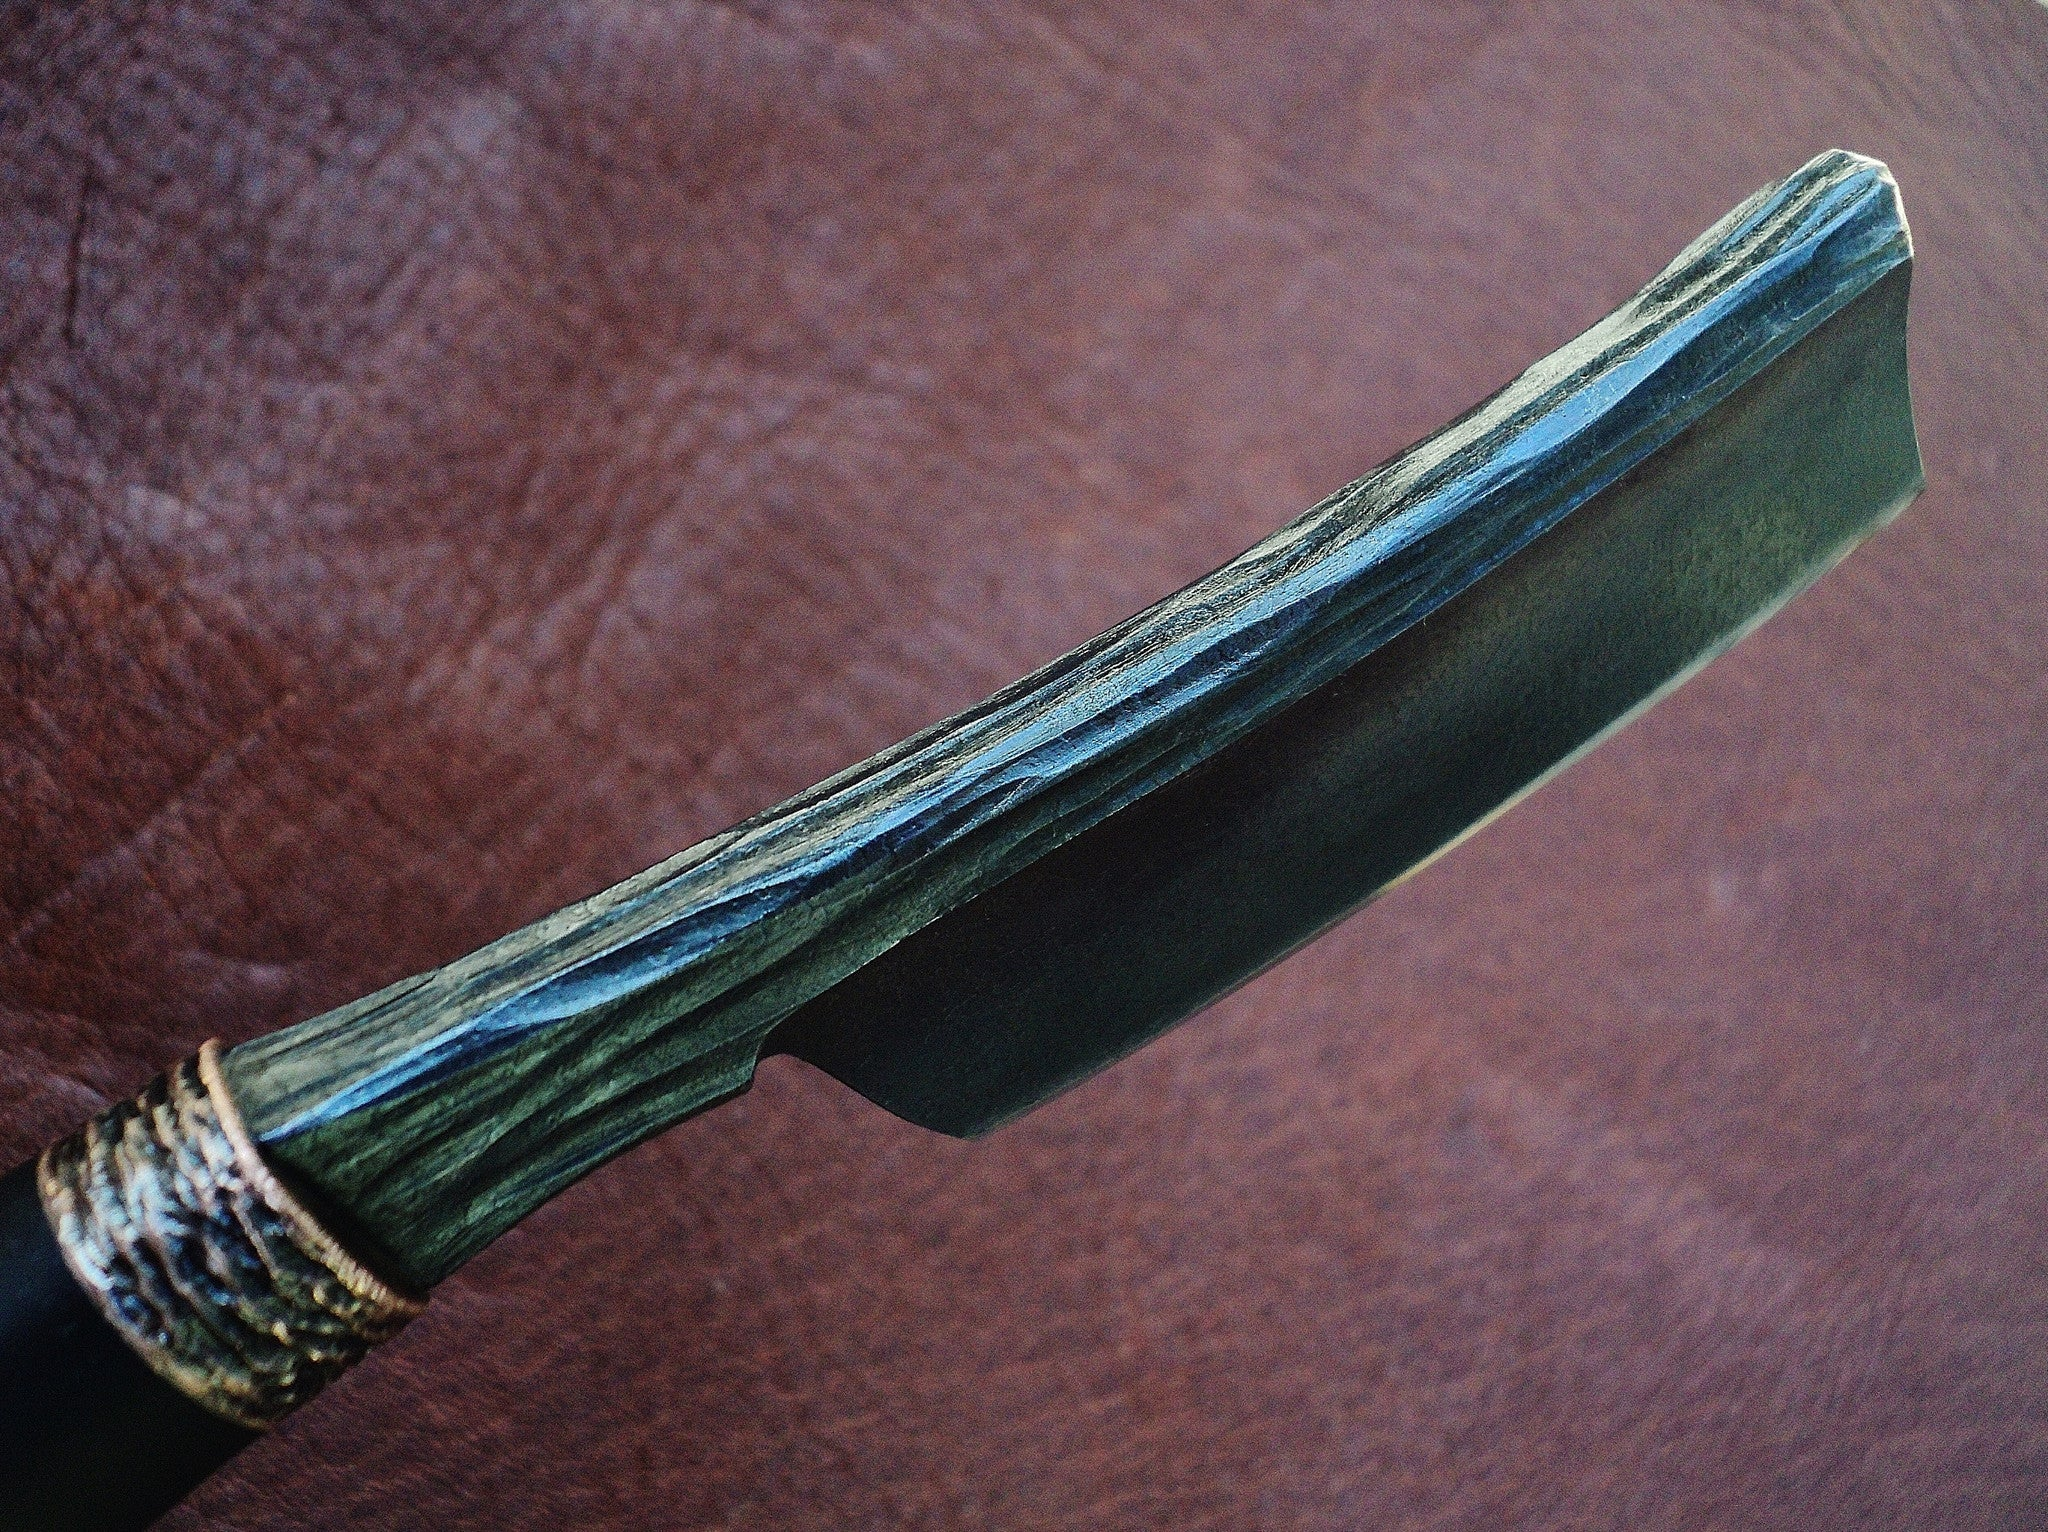 Dylan Farnham Custom Kamisori Razor - With Ebony Handle